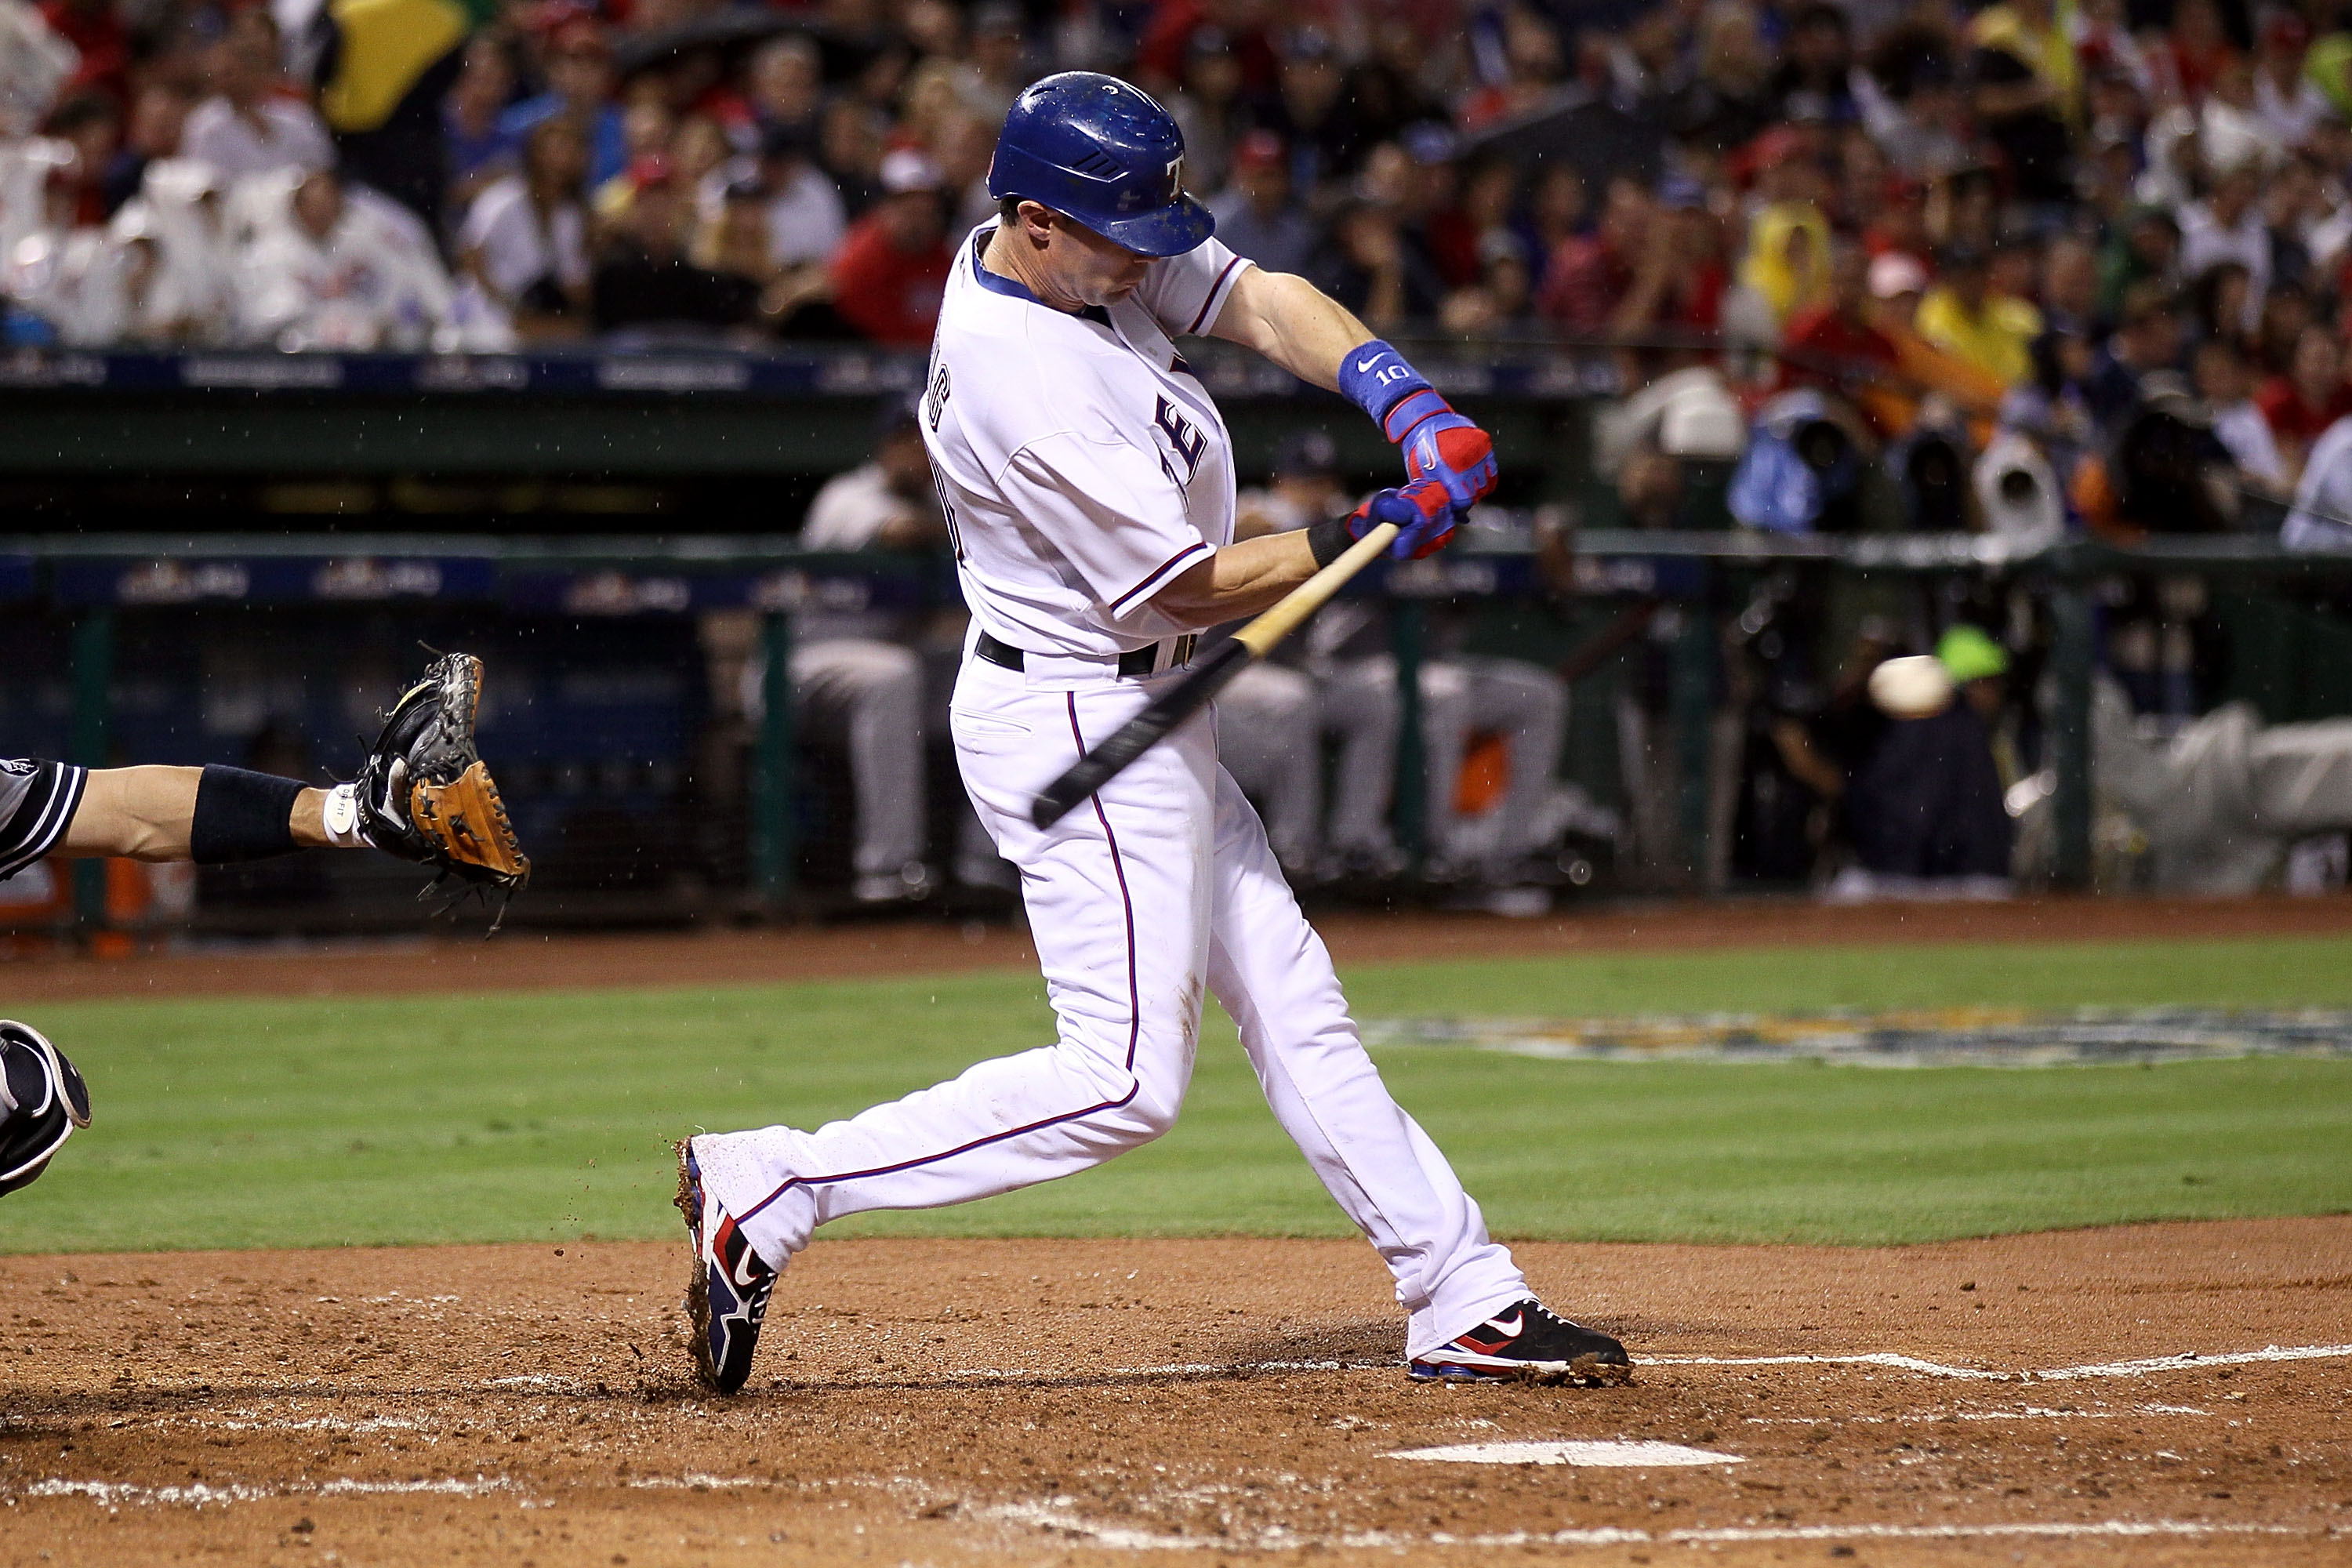 If the Rangers move Michael Young as per his request, then Travis Hafner could fill his spot easily.